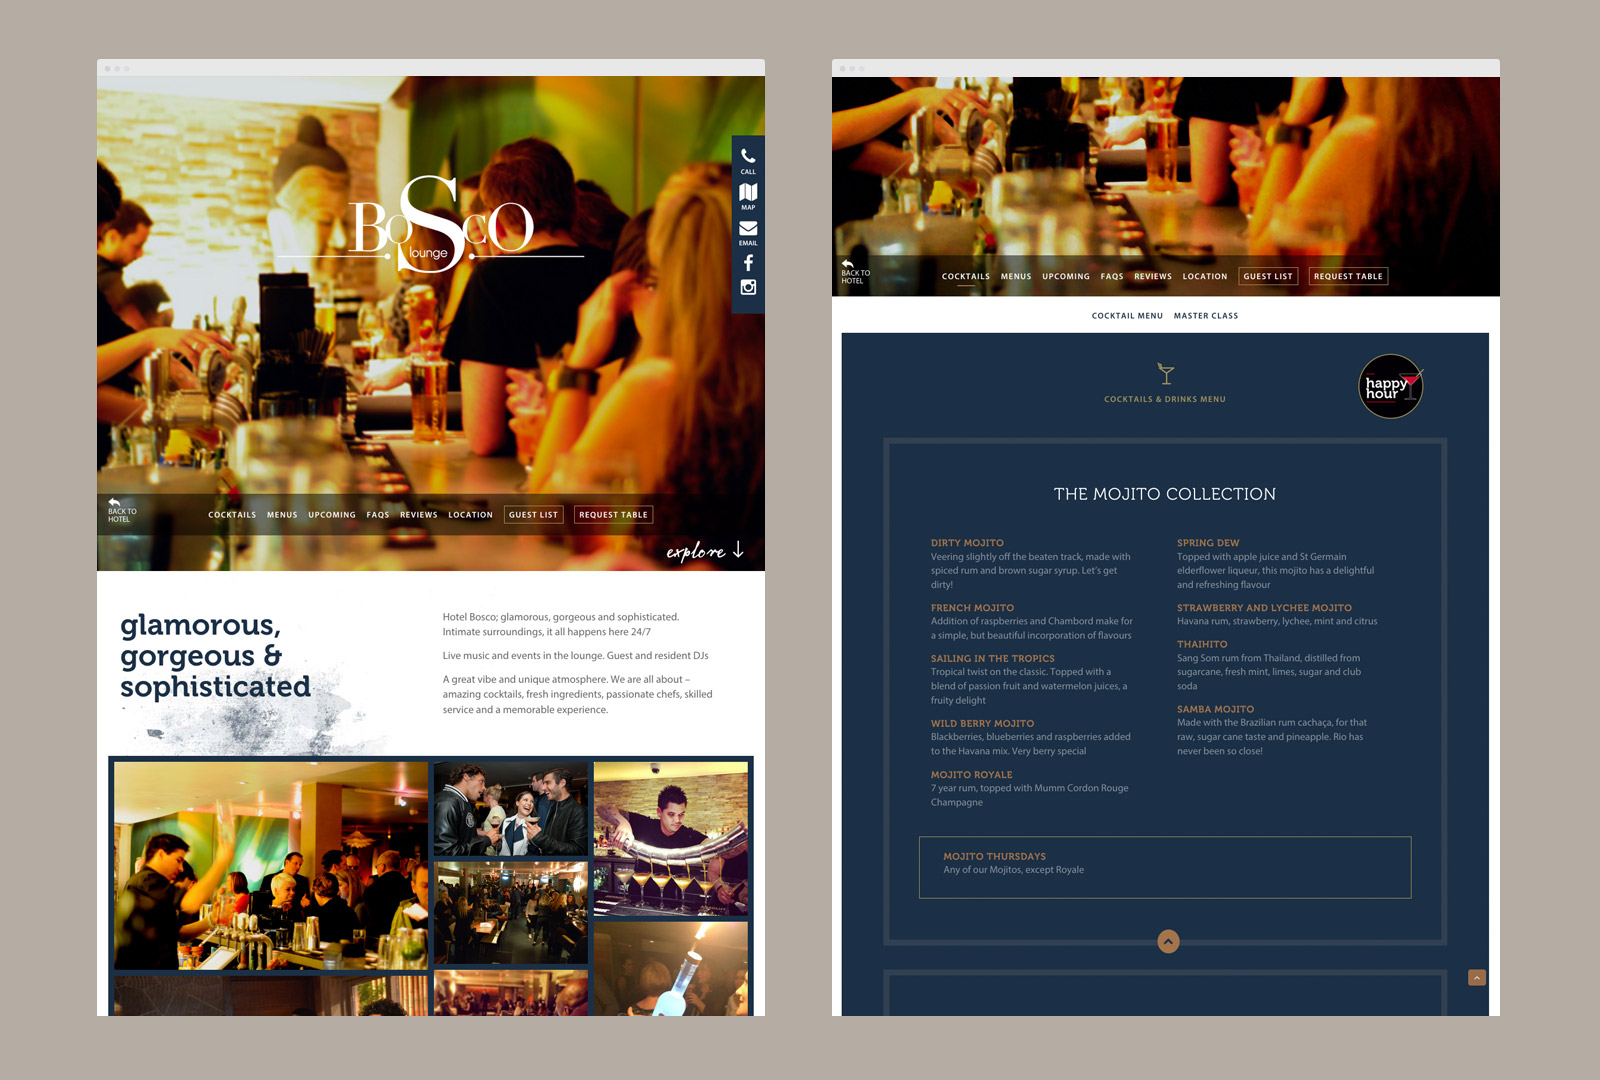 Bosco Lounge website